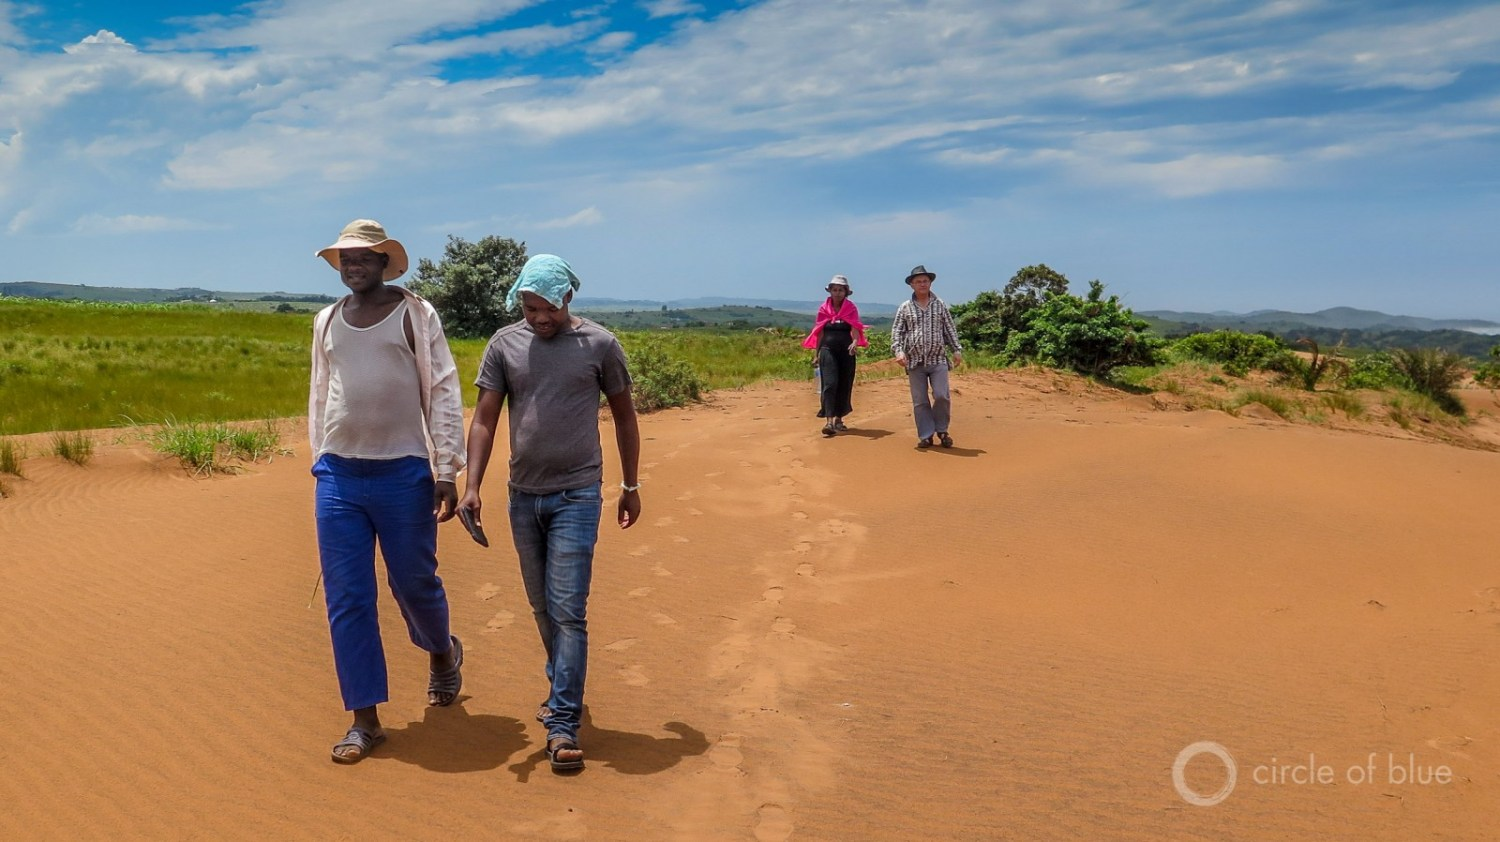 Three leaders of the Amadiba Crisis Committee, which has opposed beach mining and a new national highway since the group's founding in 2007, tour the area of the proposed mine in January. From left to right they are Zwelidumile Yalo, Mzamo Dlamini and Nonhle Mbuthuma. Dick Forslund, far right, is Mbuthuma's husband. Photo © Keith Schneider / Circle of Blue